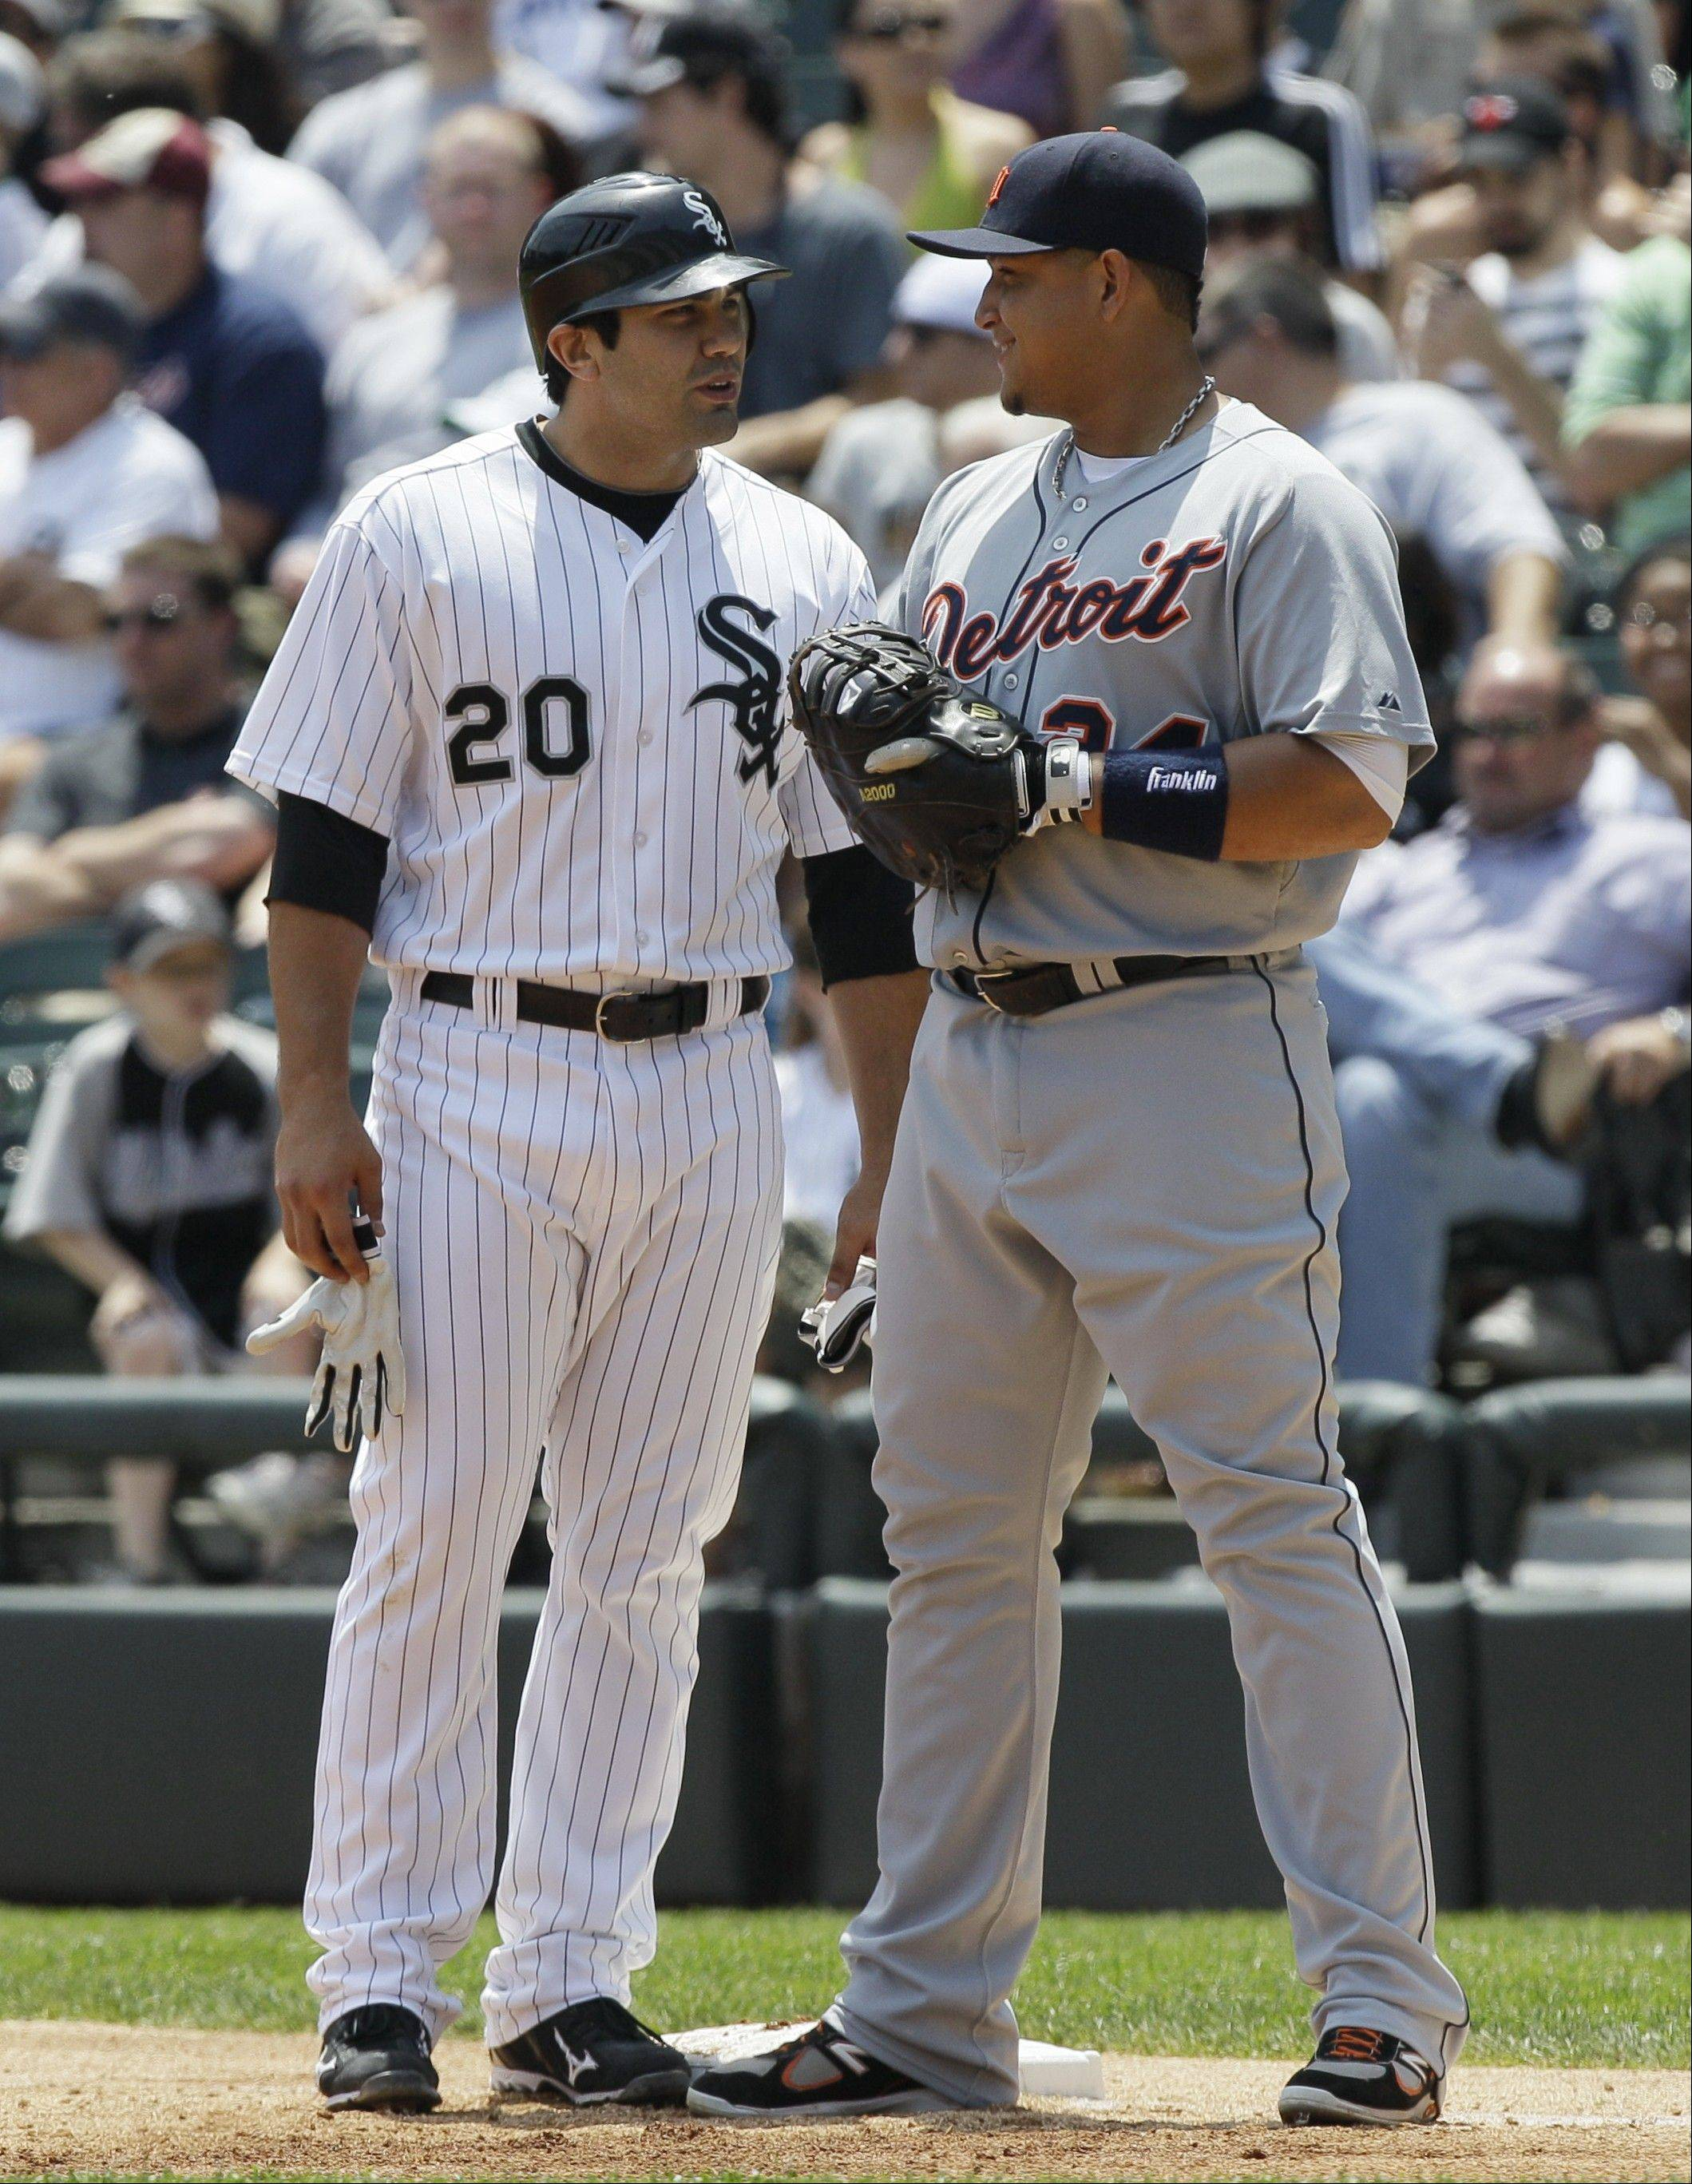 The White Sox will host the Detroit Tigers for their April 13 home opener in 2012, but they'll begin the season on the road at Texas on April 16.